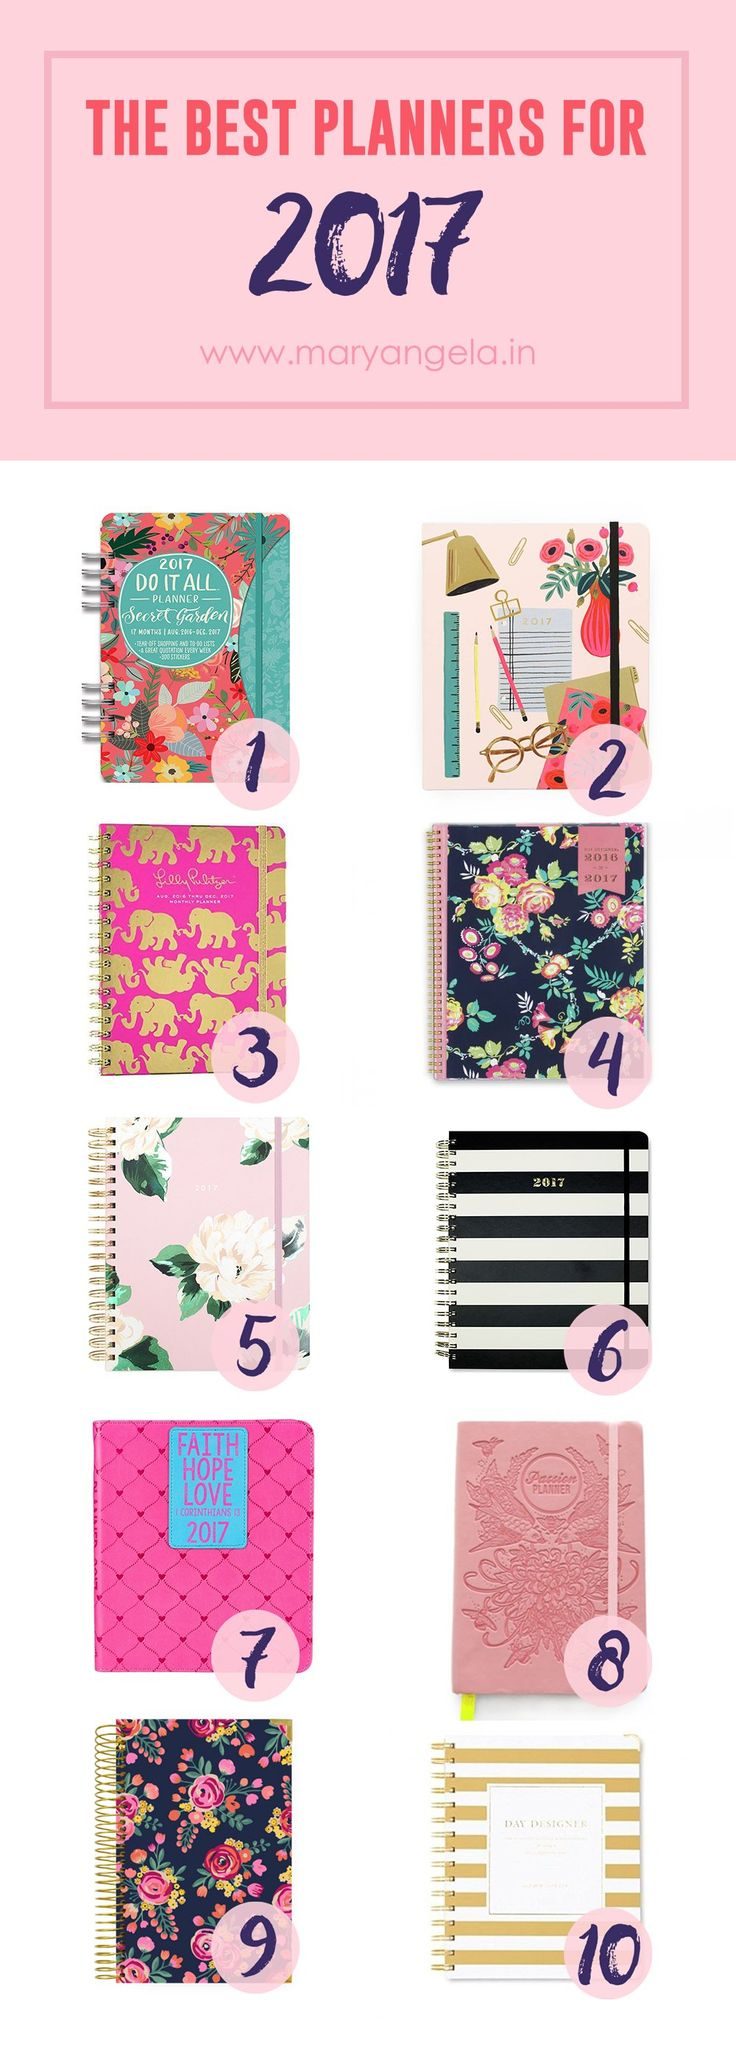 Best Planners for 2017